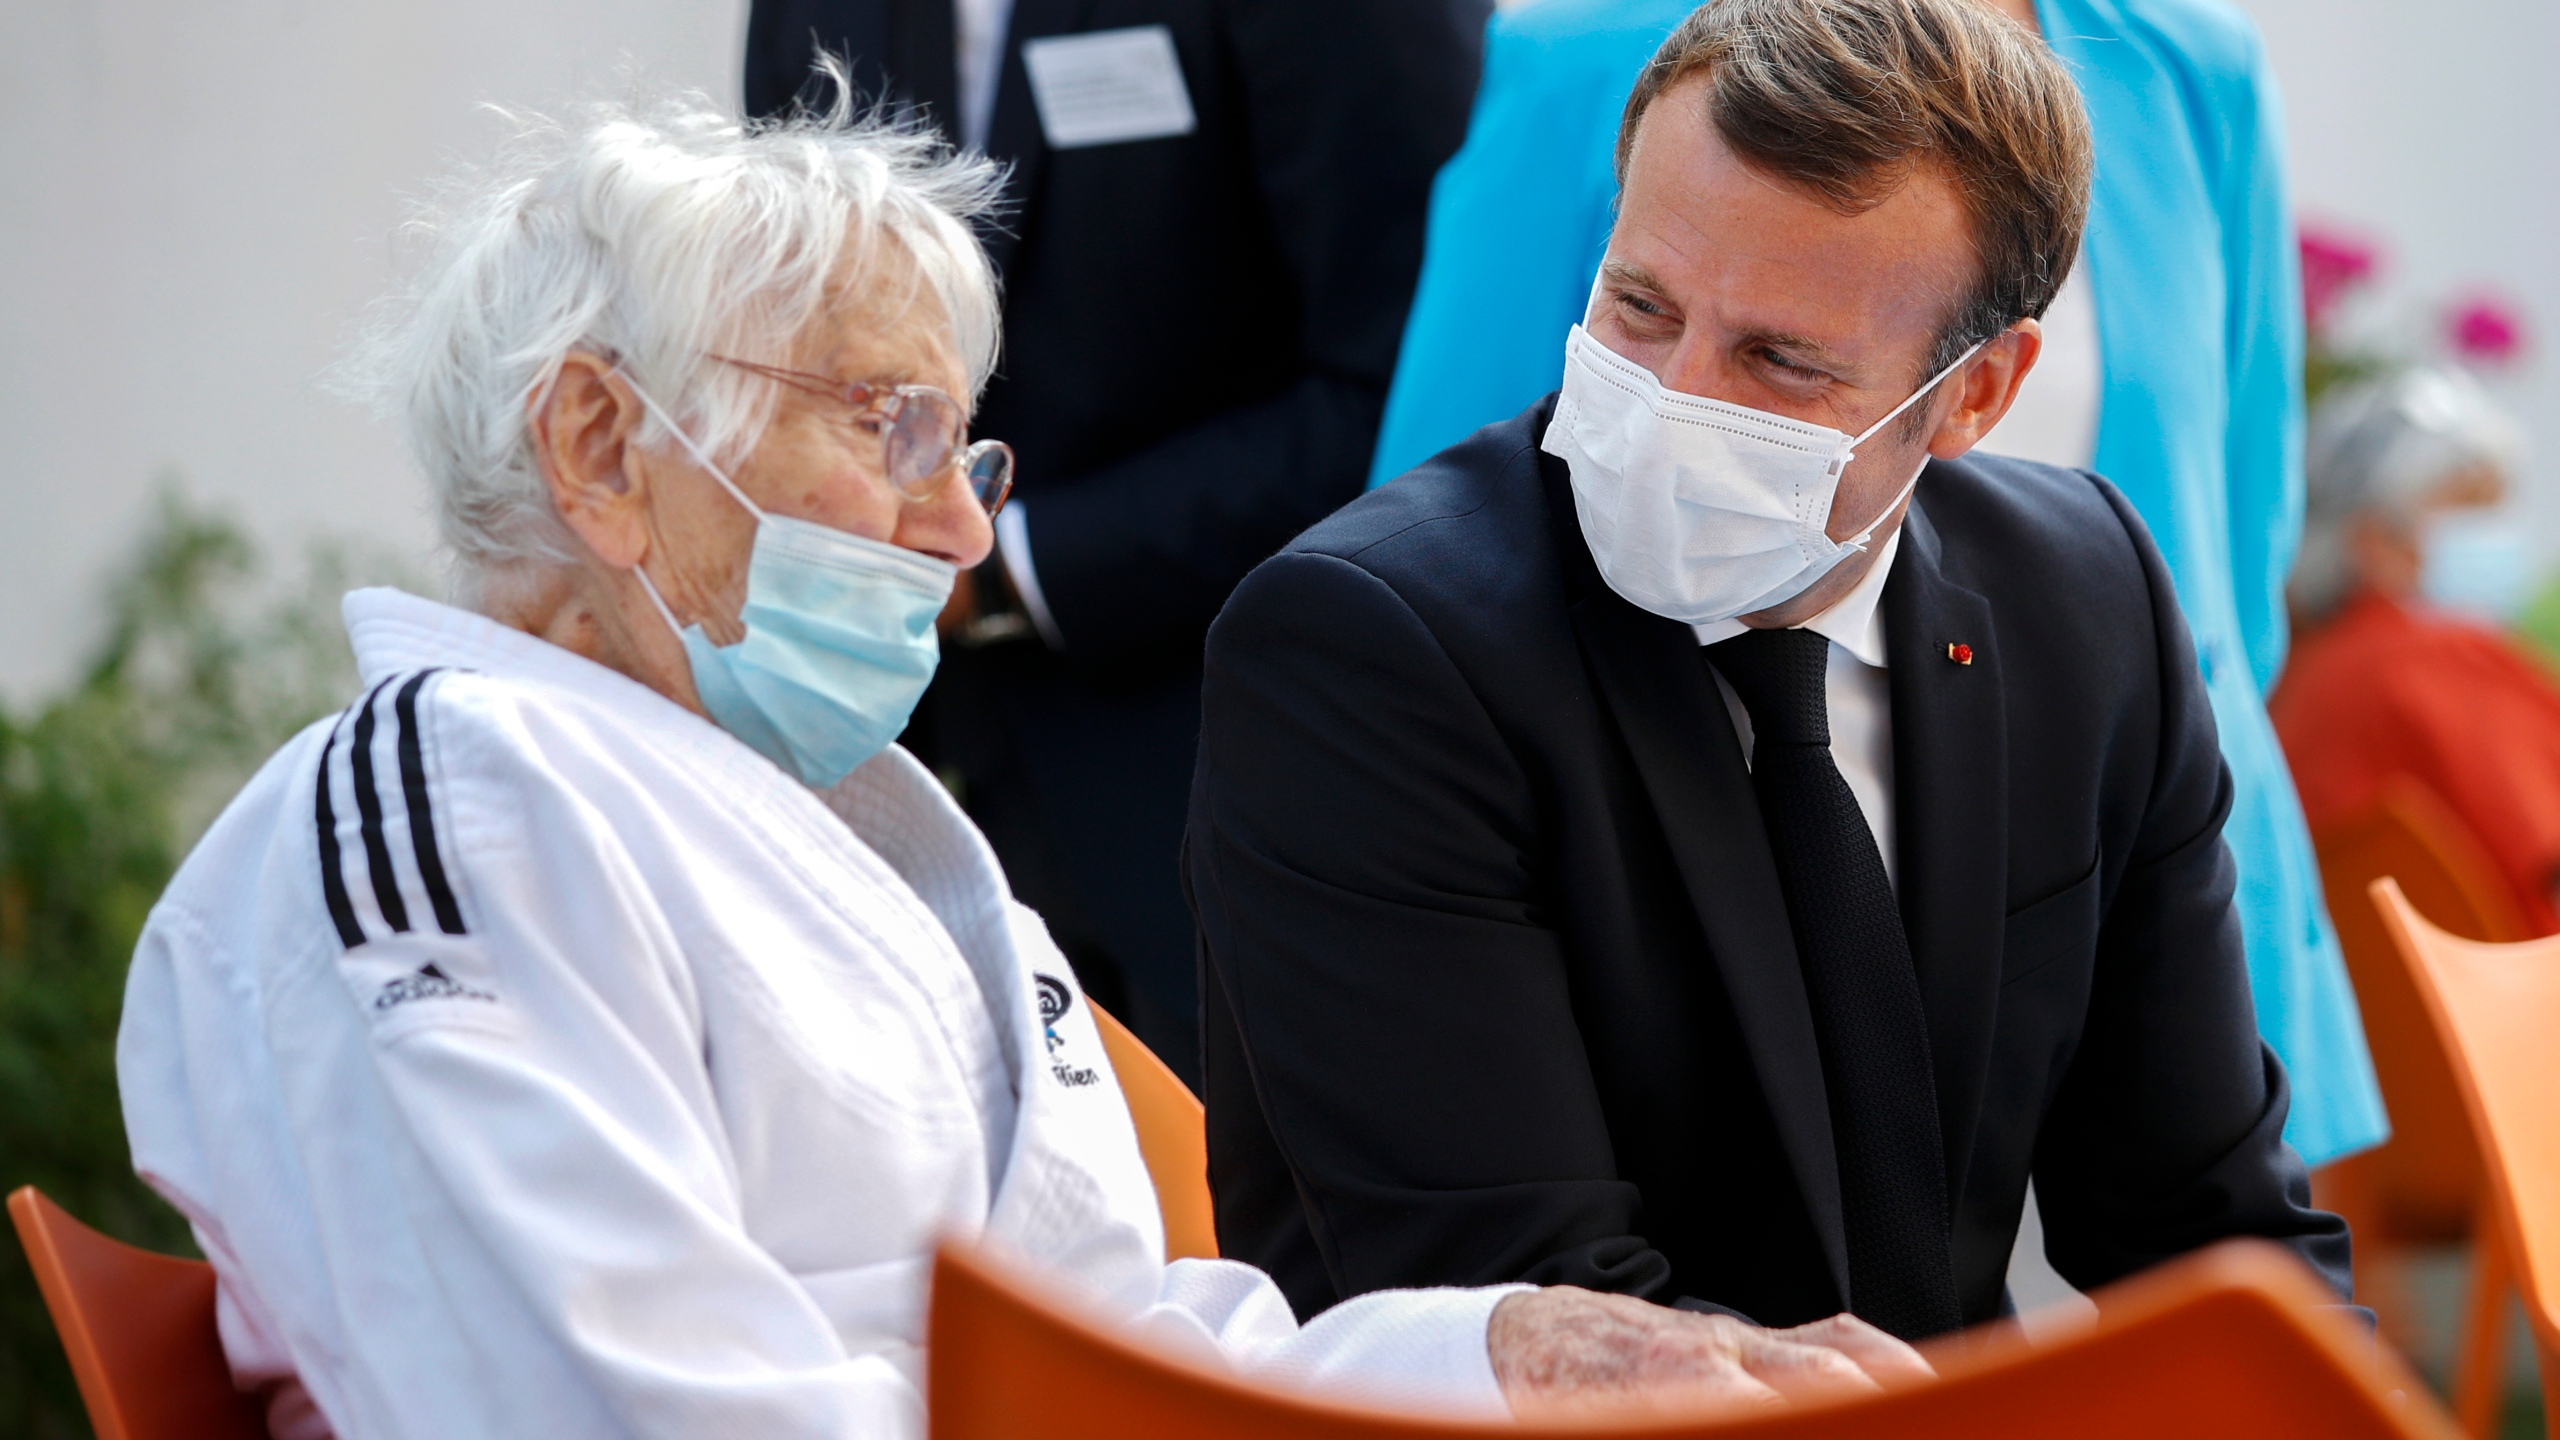 Emmanuel Macron at a retirement home